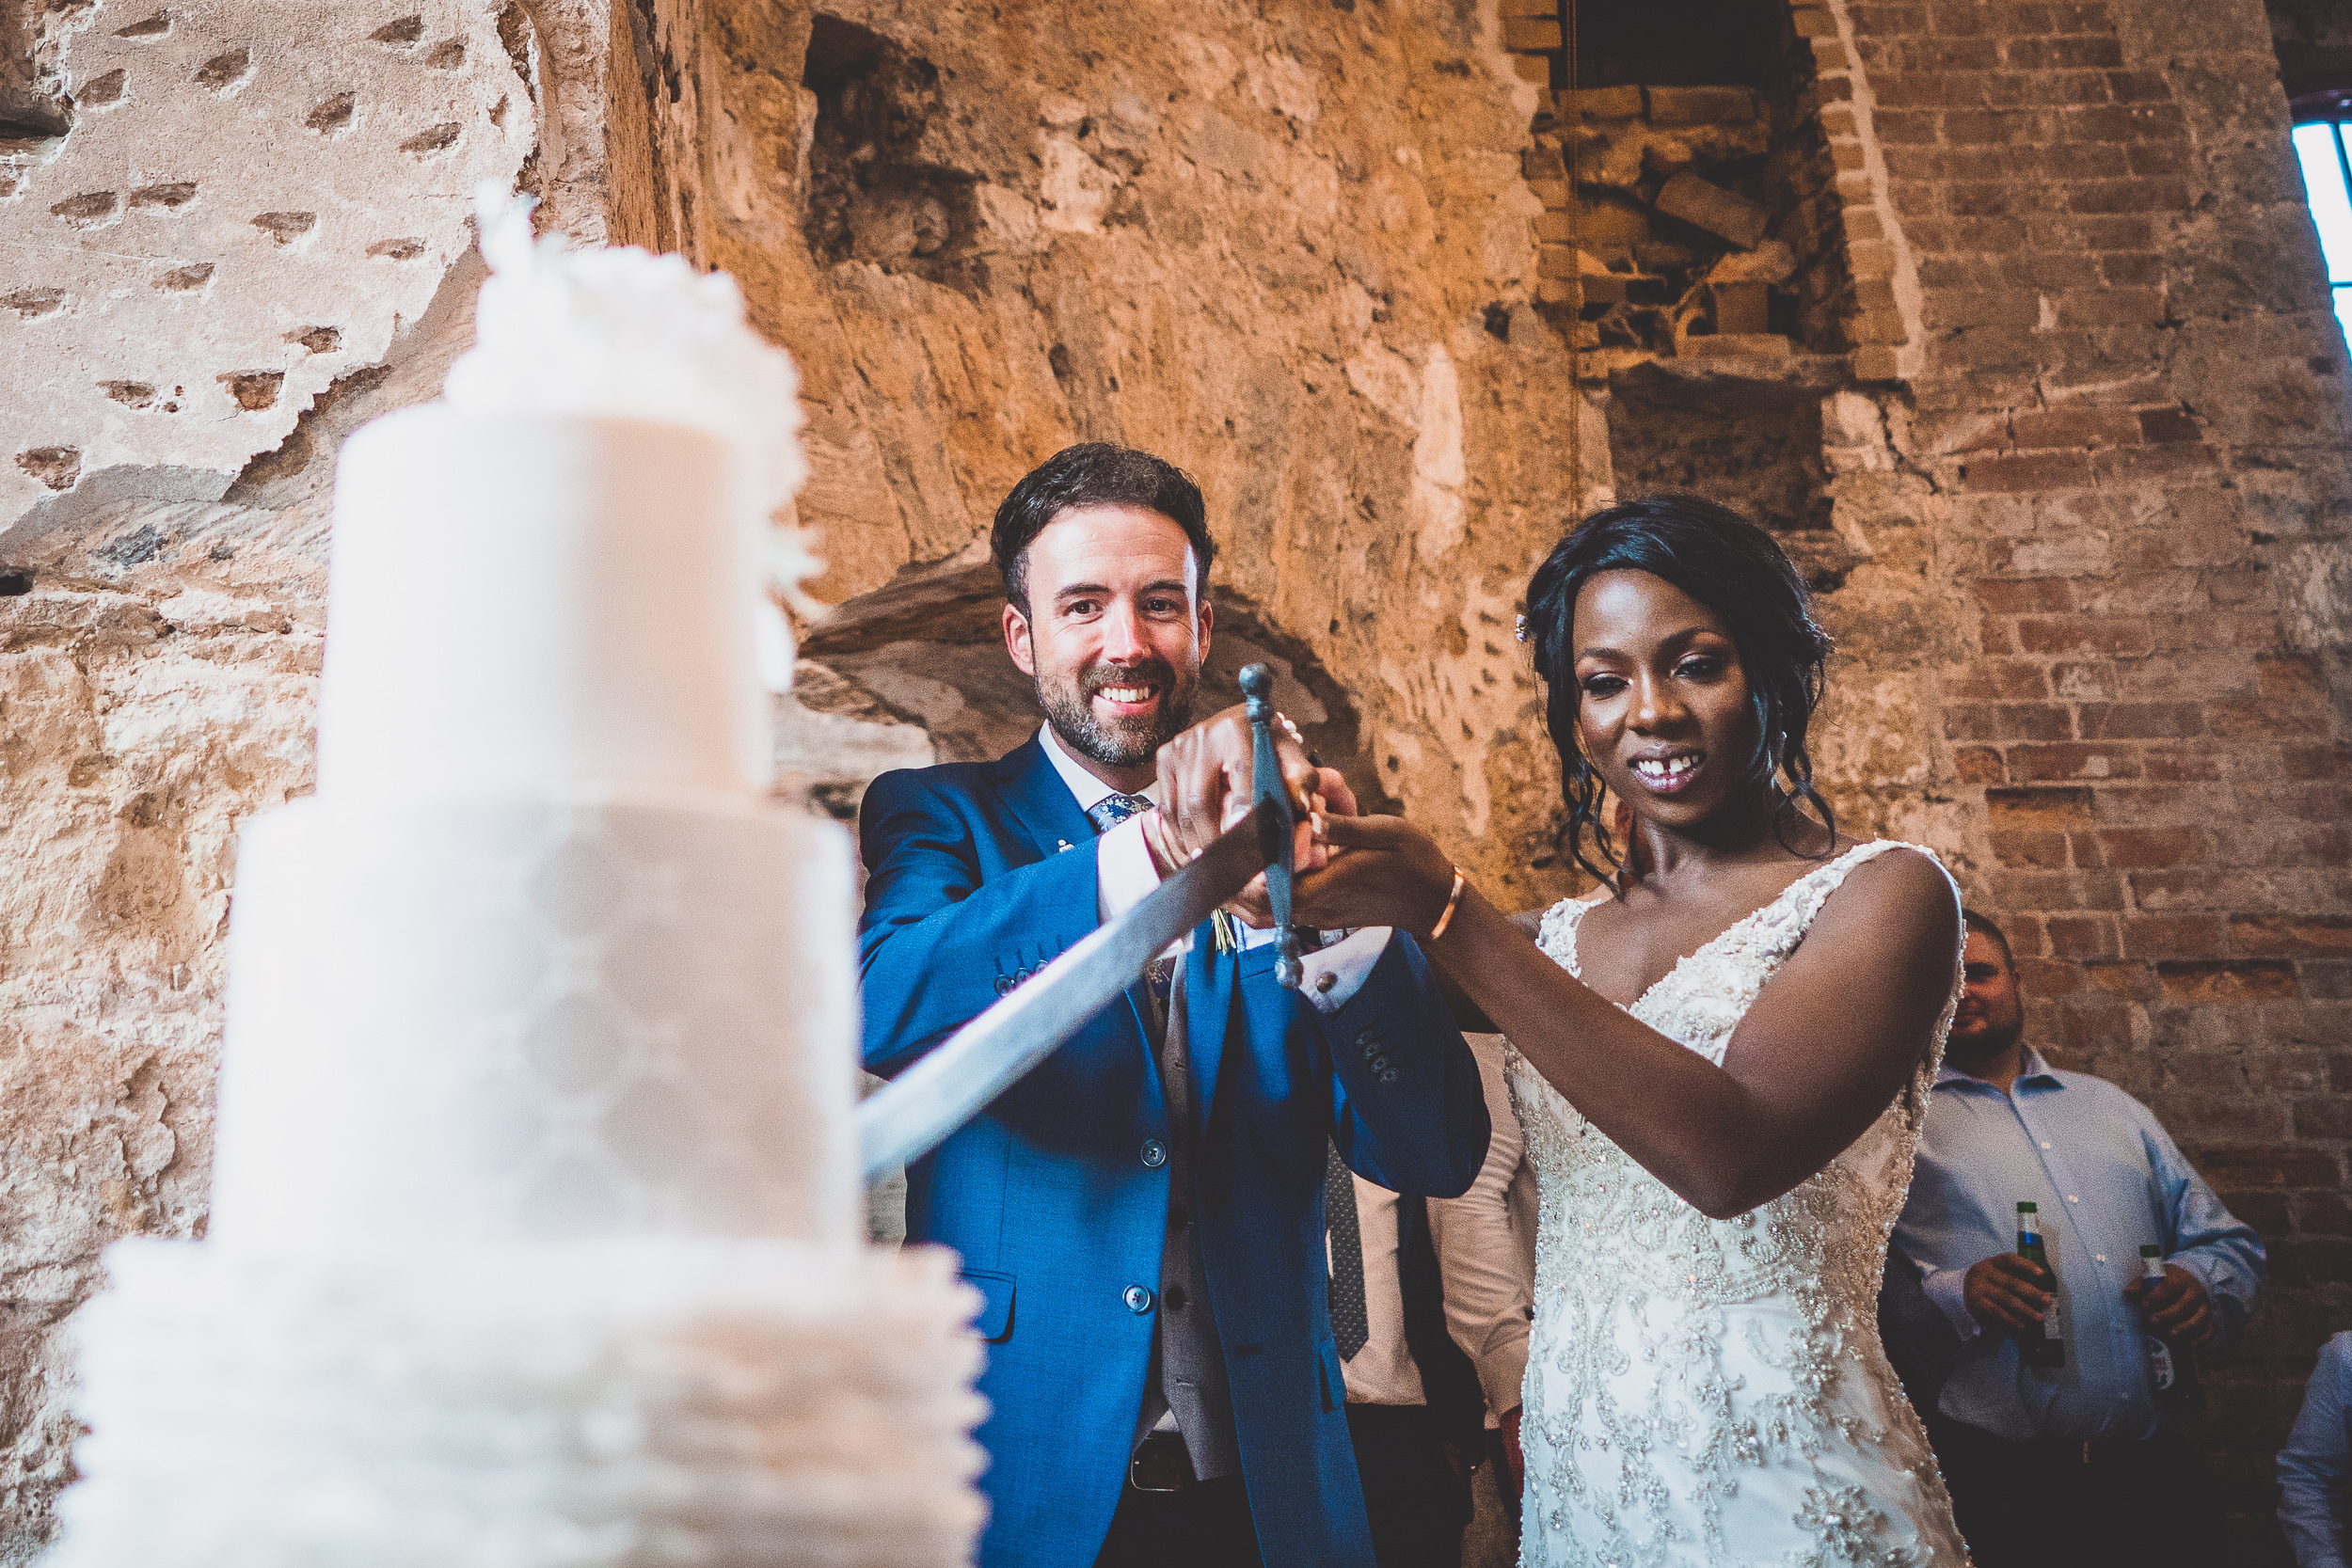 Lulworth Castle Wedding Photography | Amina & David Amina David ss 099